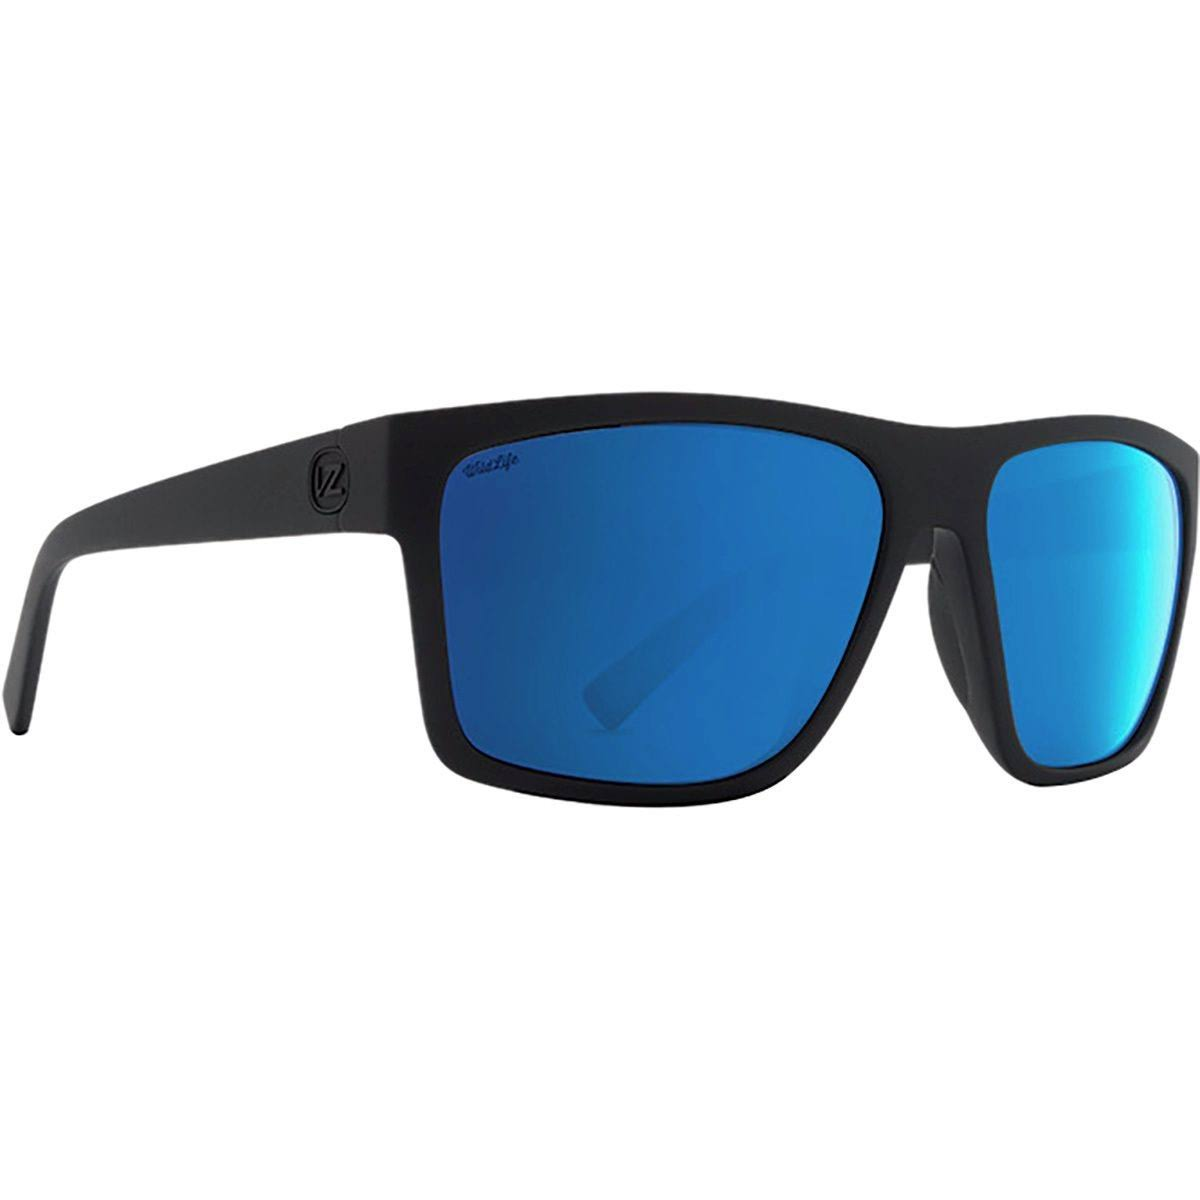 VonZipper Dipstick Polarized Black Satin Wild Blue Sunglasses